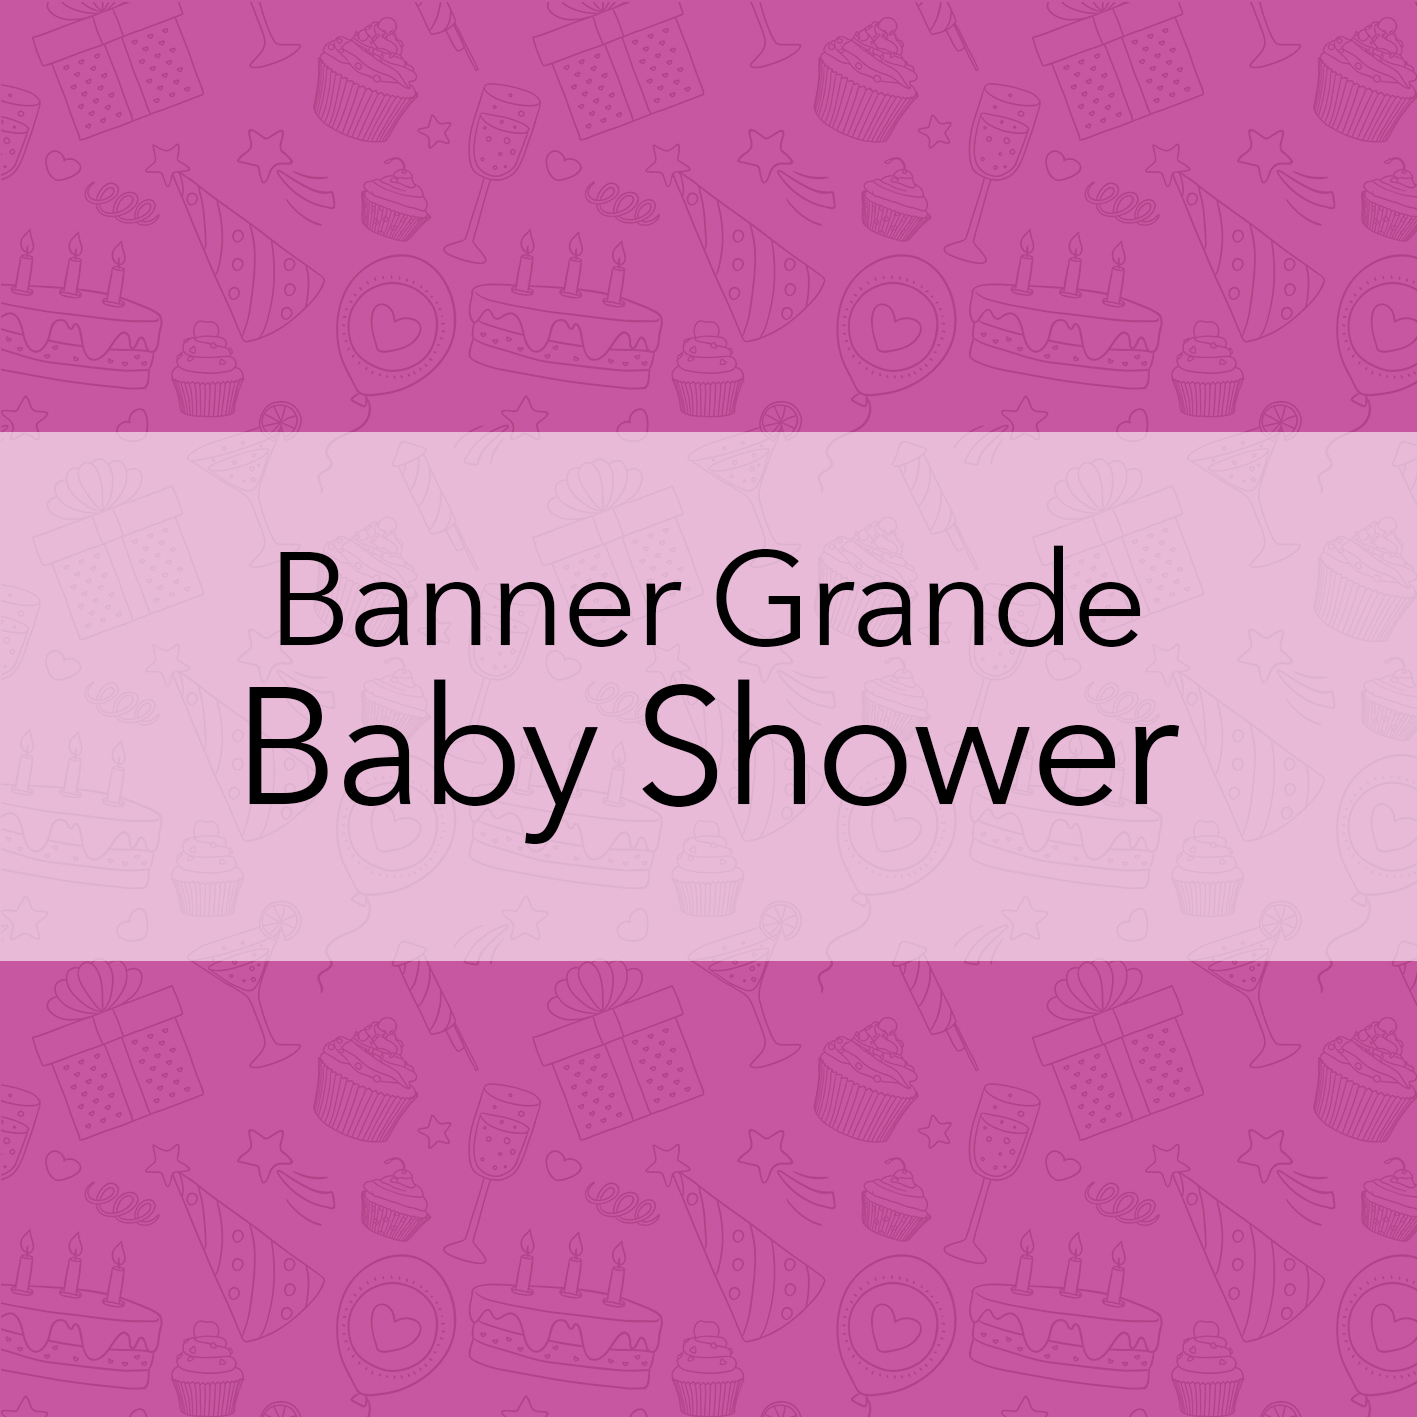 BANNERS GRANDES - BABY SHOWER